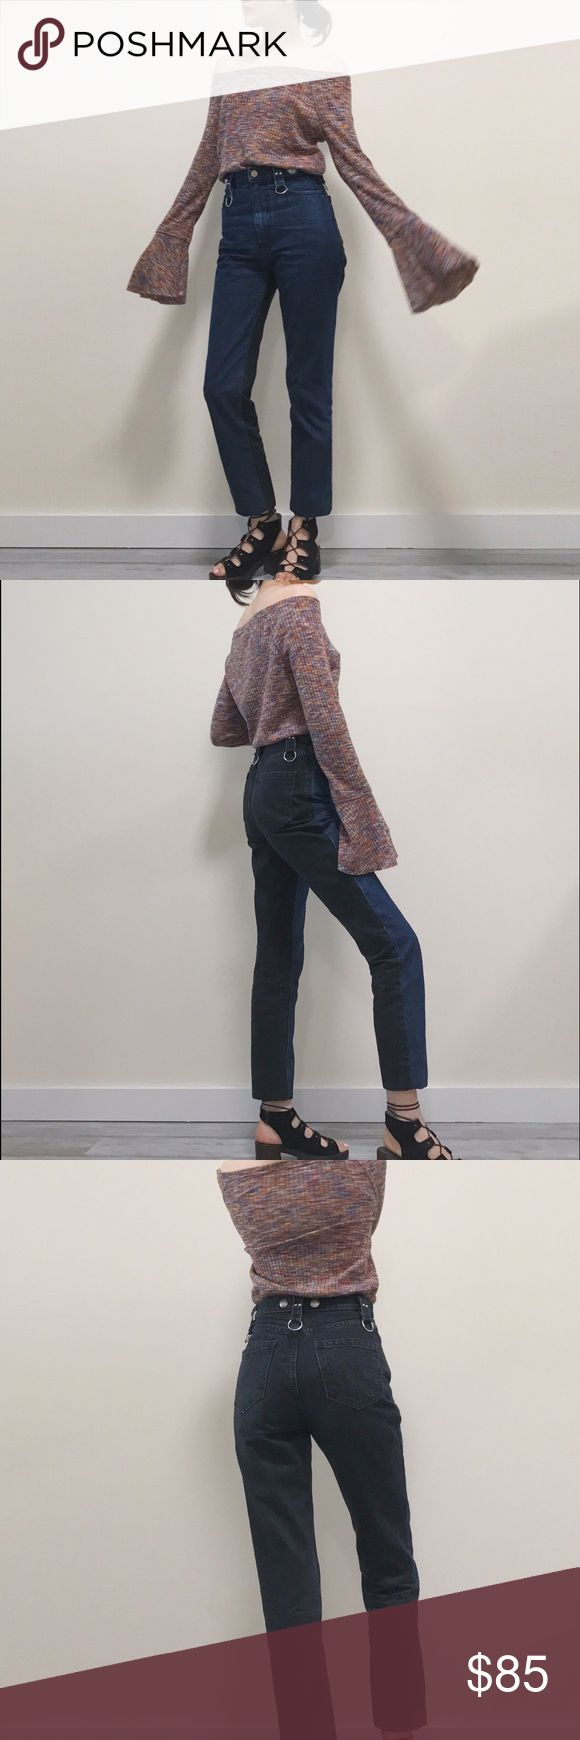 """Rachel Comey 2 colors jeans with hardware details Very stylish. Front is blue, back is black. Beautiful hardwares on the waistband. High waisted. Size 0. Model is 26"""" waist, 34.5 hip. Length (measures from the side)is about 40.5"""". Rachel Comey Jeans Straight Leg"""